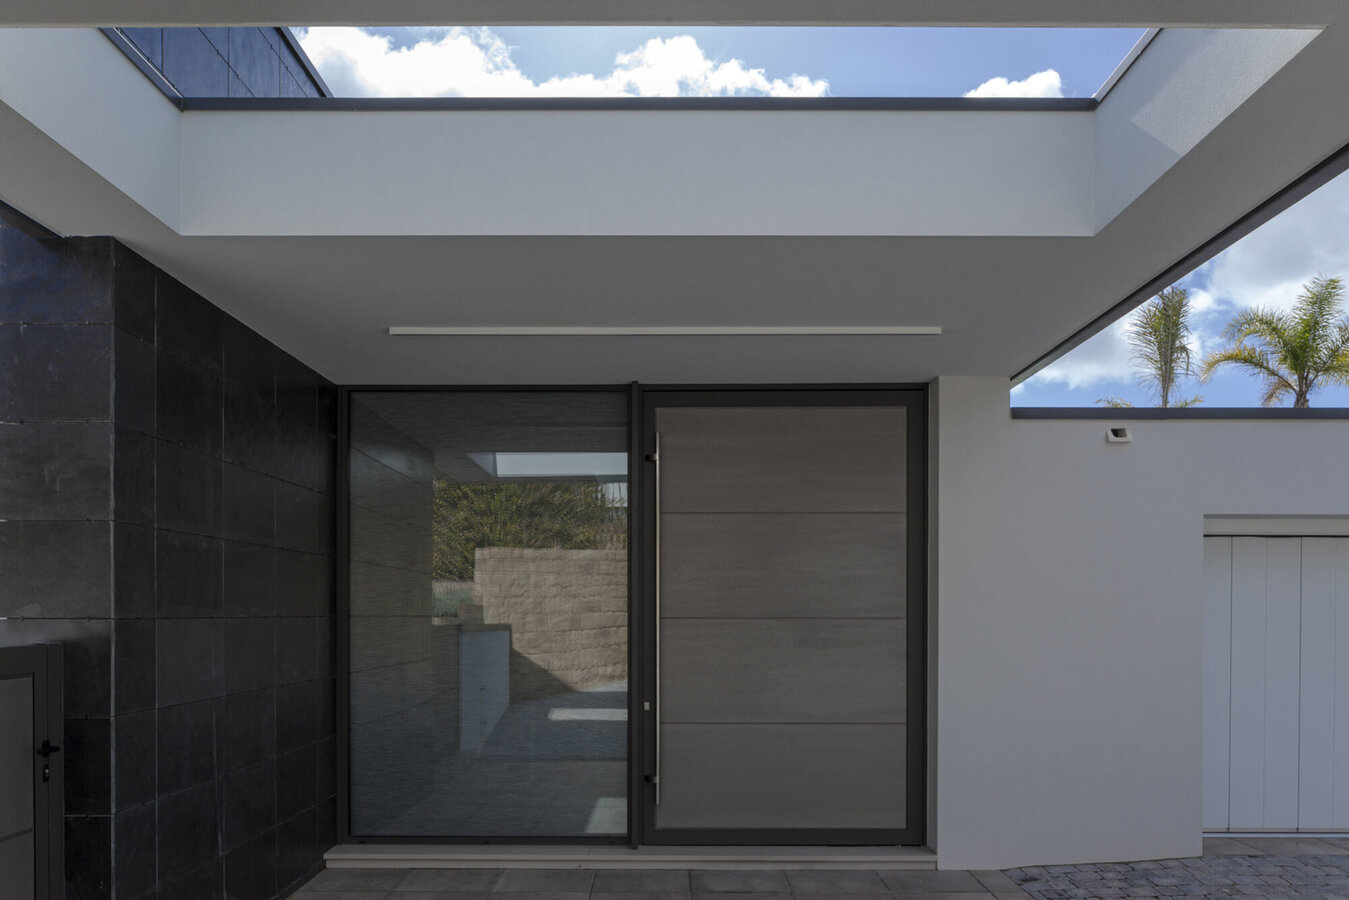 SlimLine 38 Doors, Hi-Finity Sliding Systems and CF 77 Sliding Systems - House Pattan - House 3 located in Spain